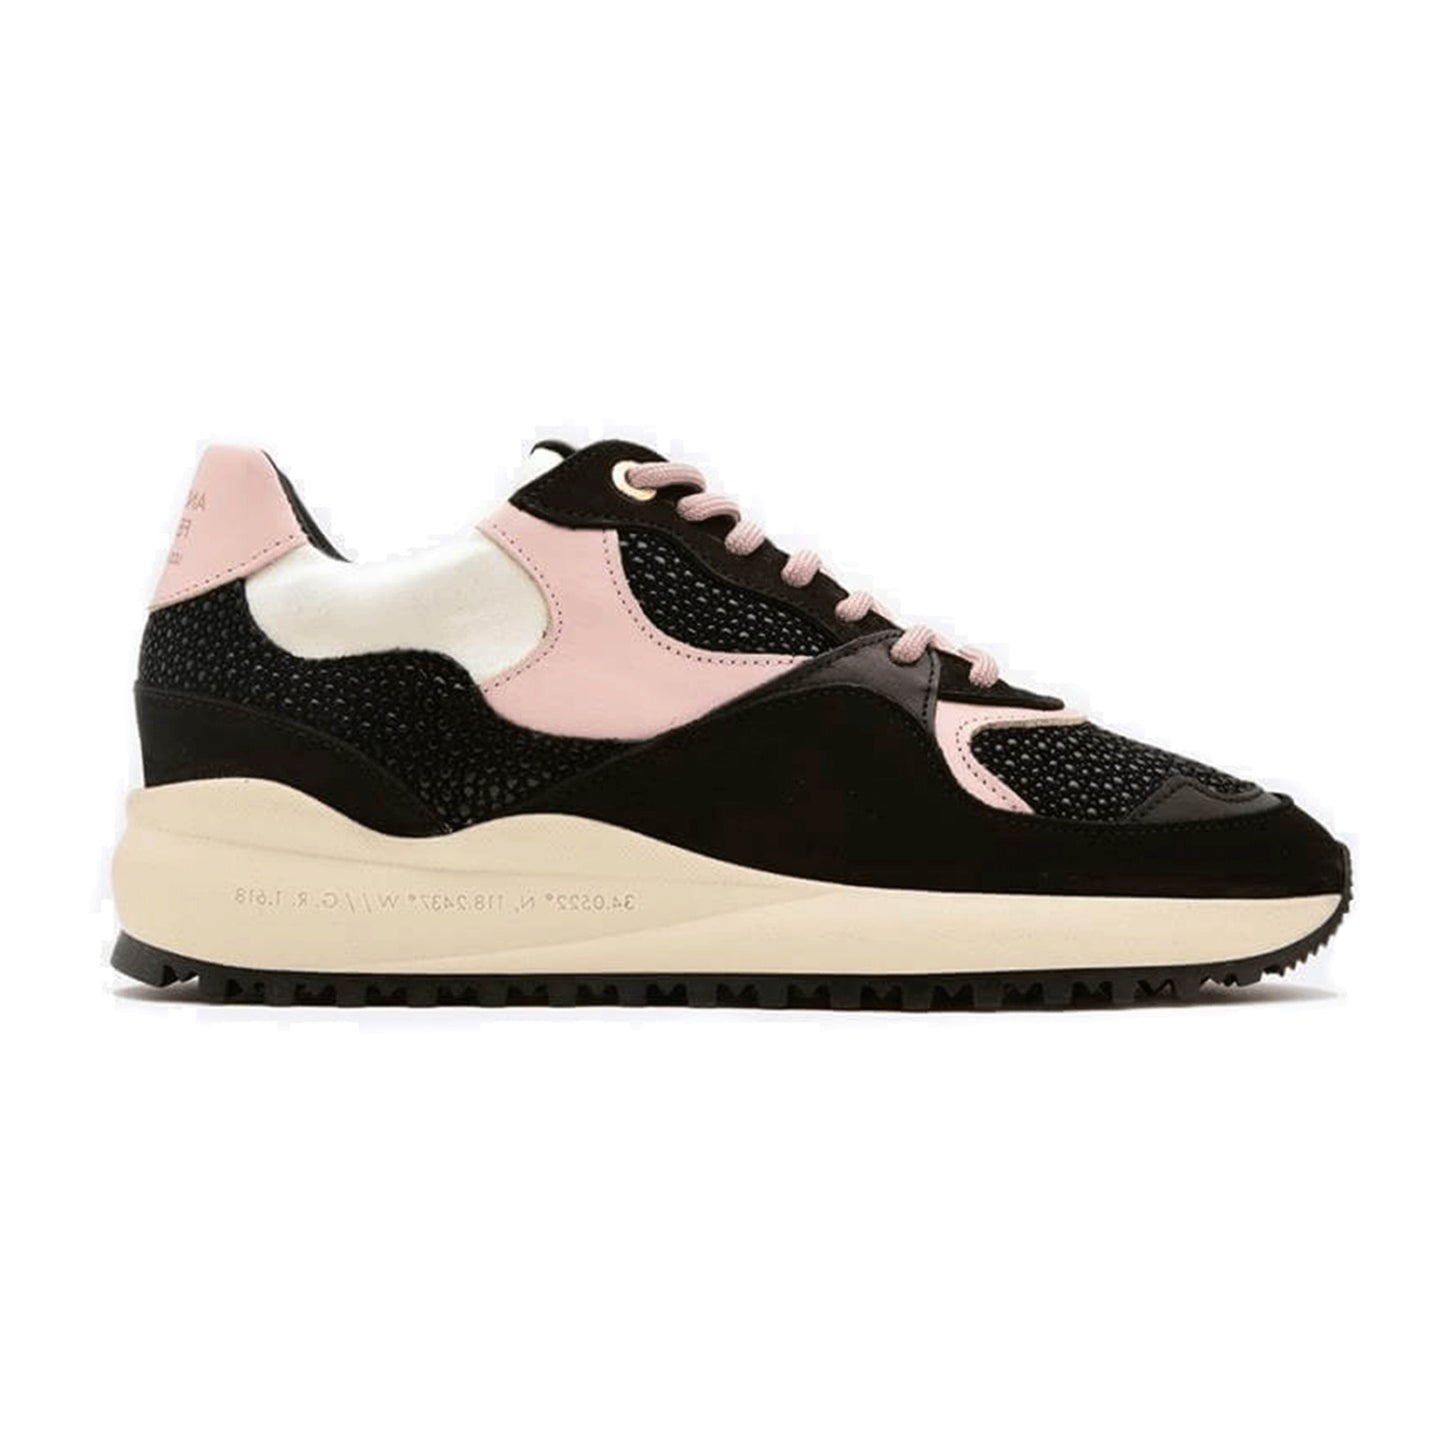 Android Femme Santa Monica Runners - Pink/Black